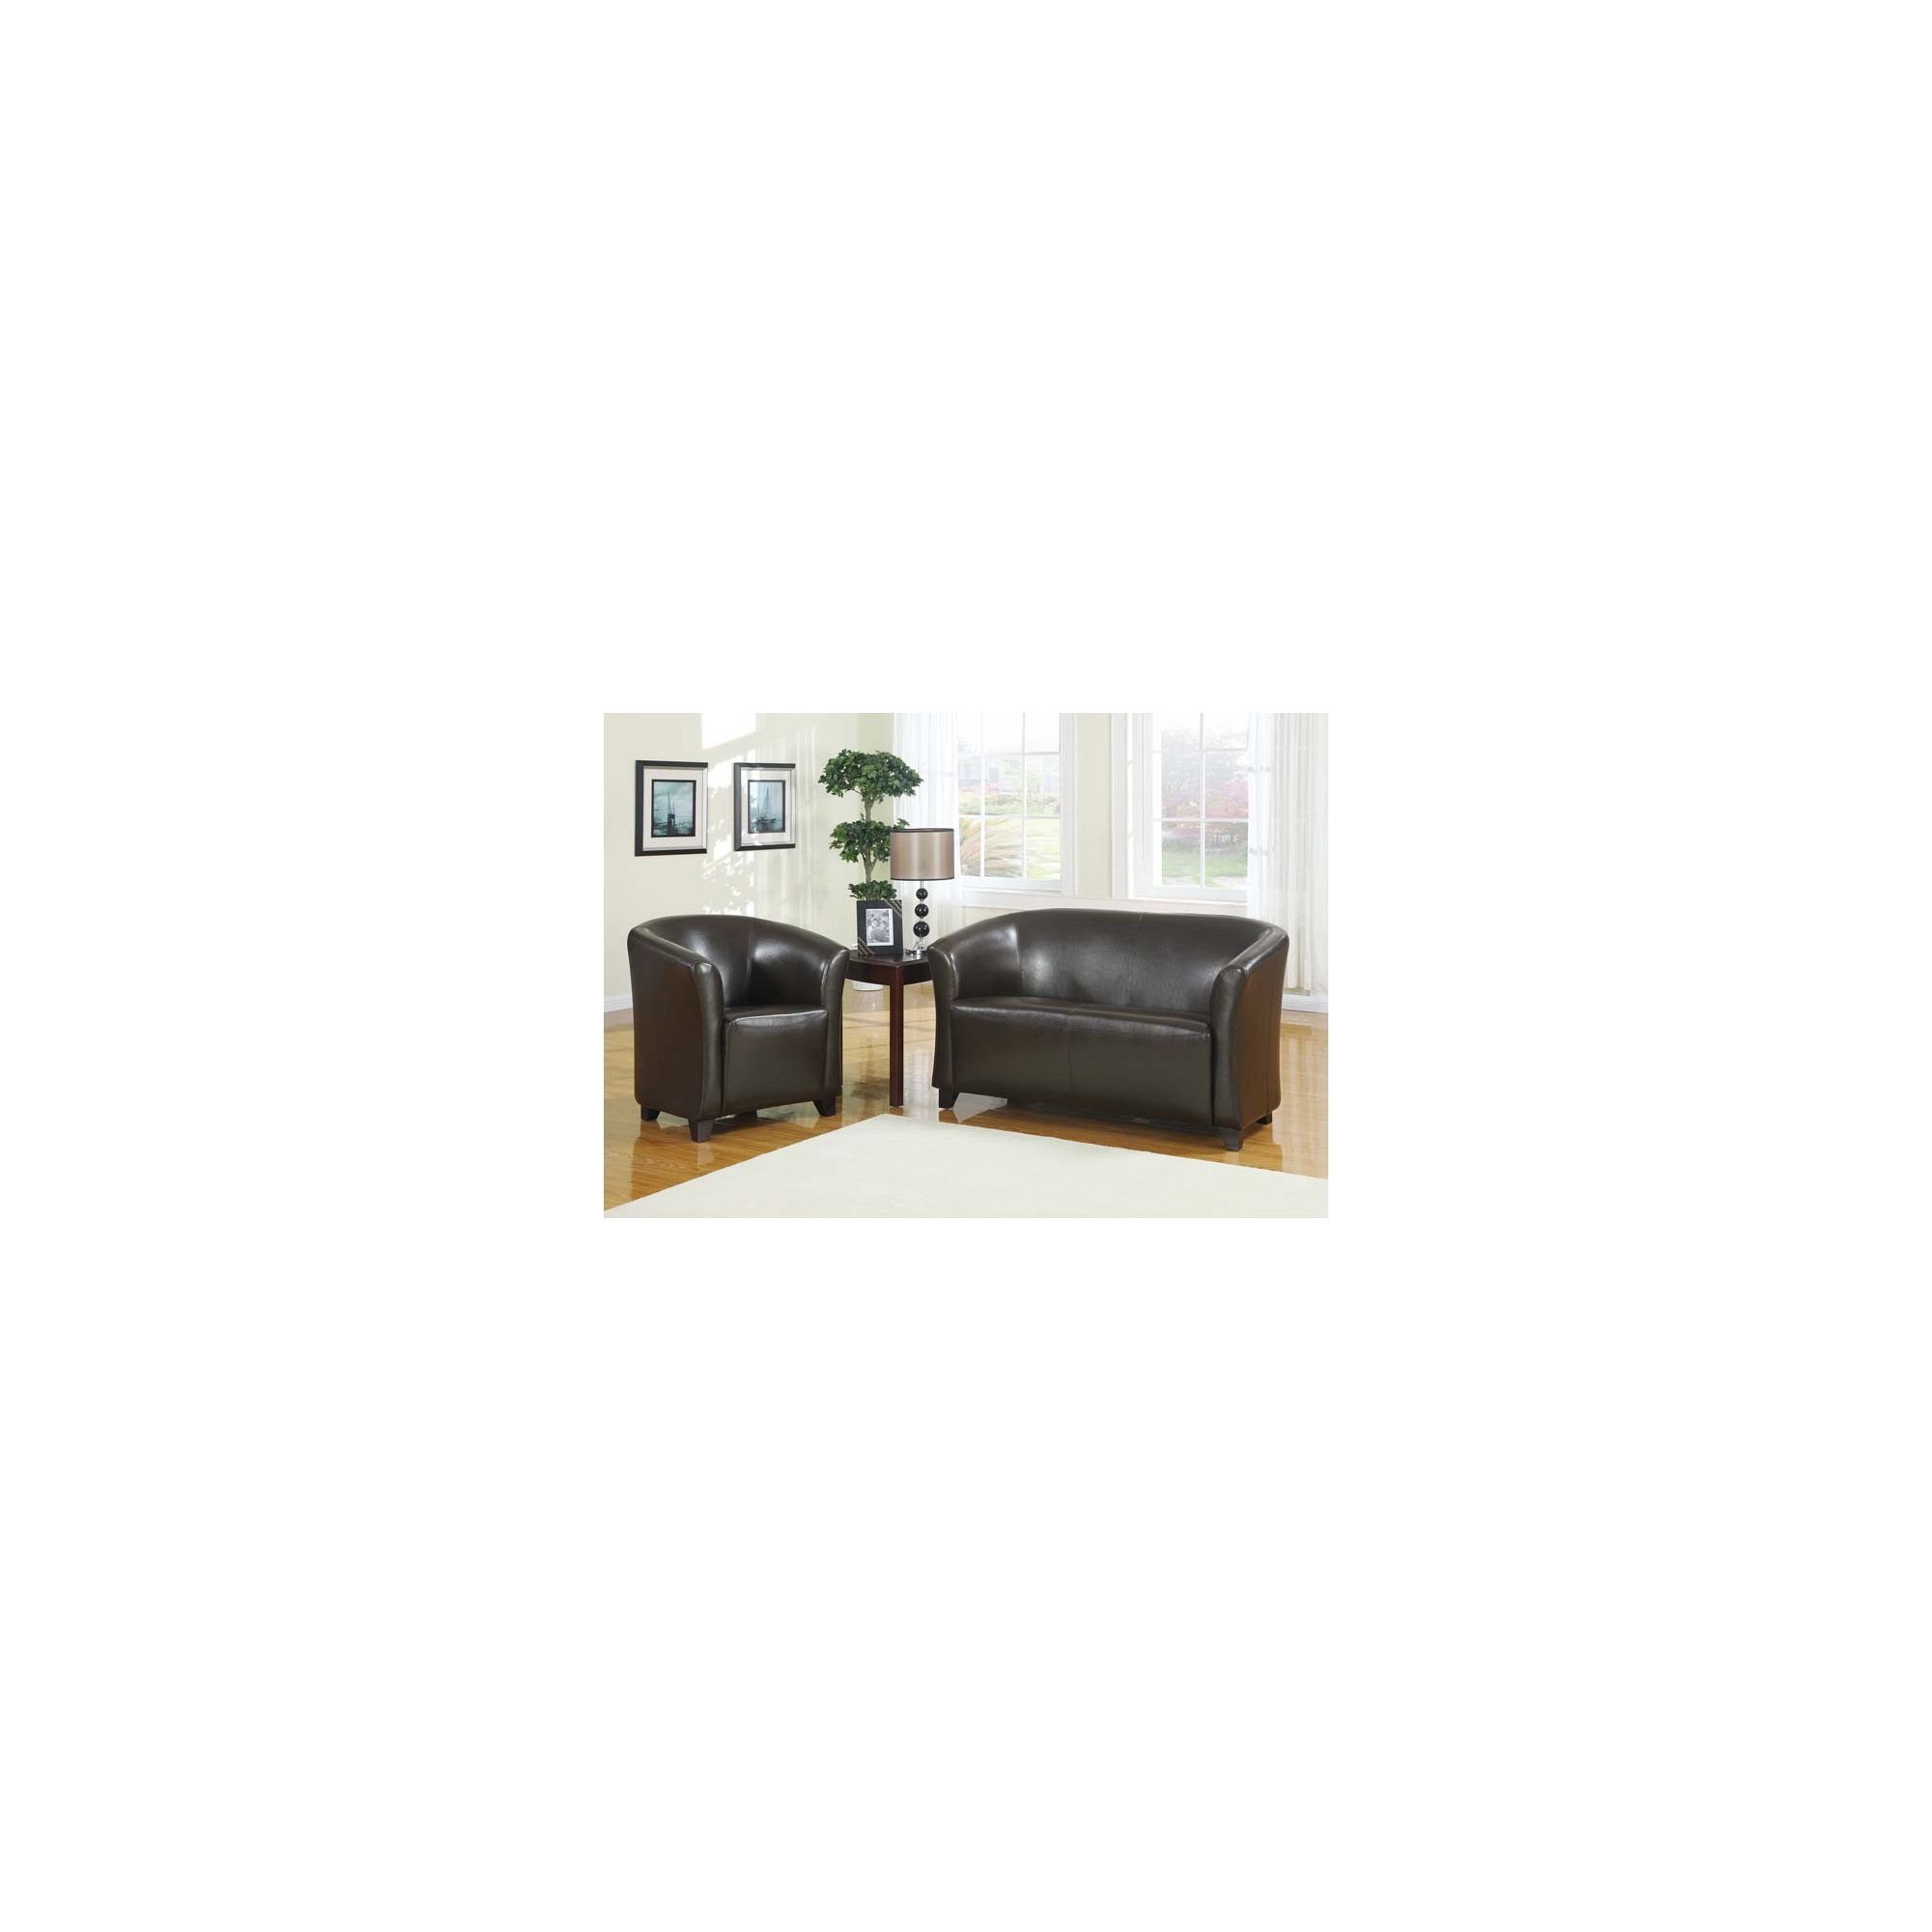 Hawkshead Club Leather Two Seater Sofa in Dark Brown at Tescos Direct